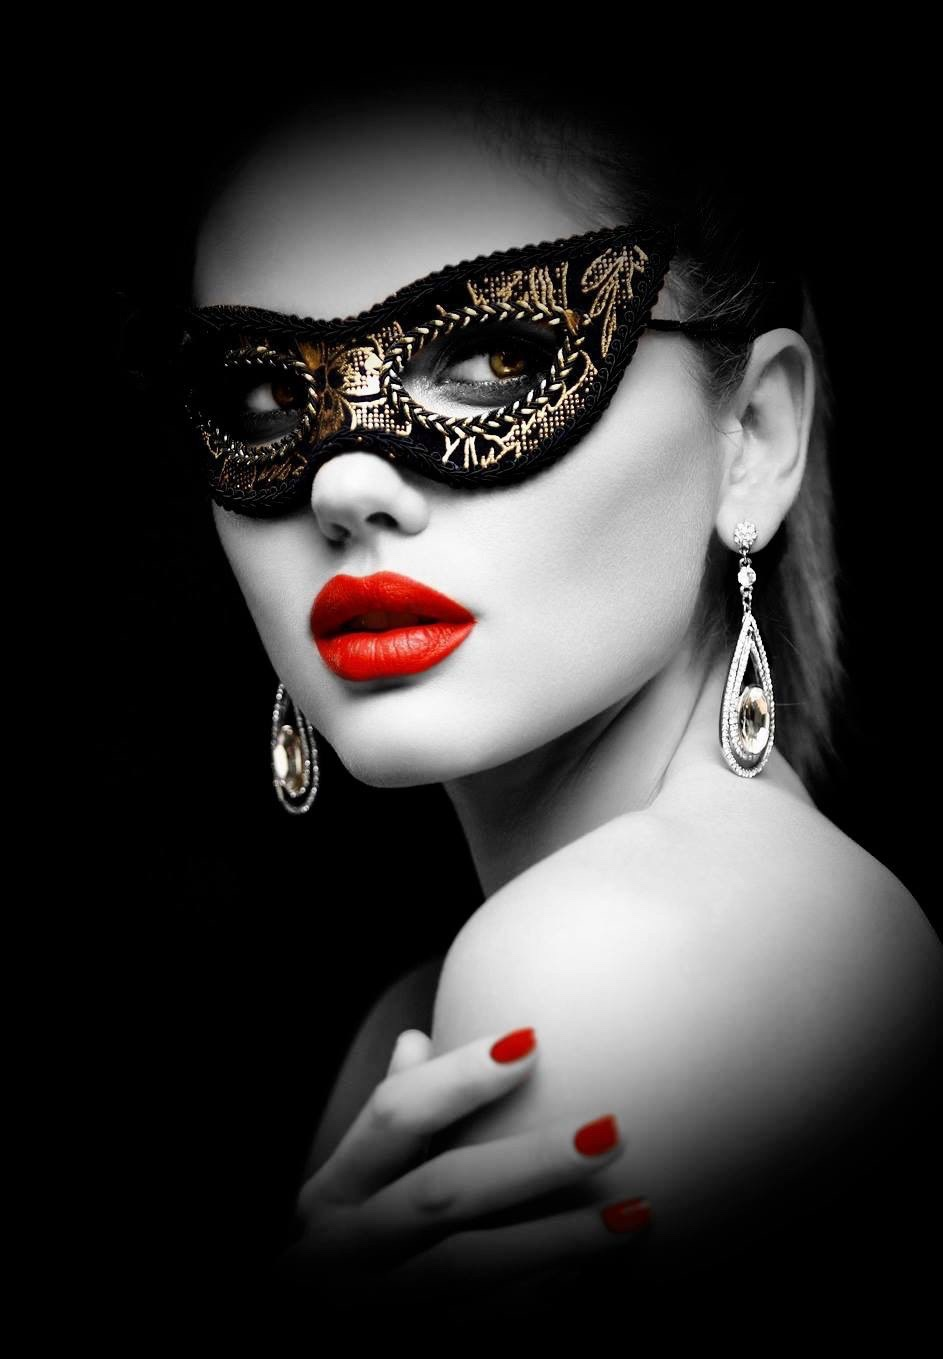 Beautiful woman with red lipstick wearing a black and gold mask